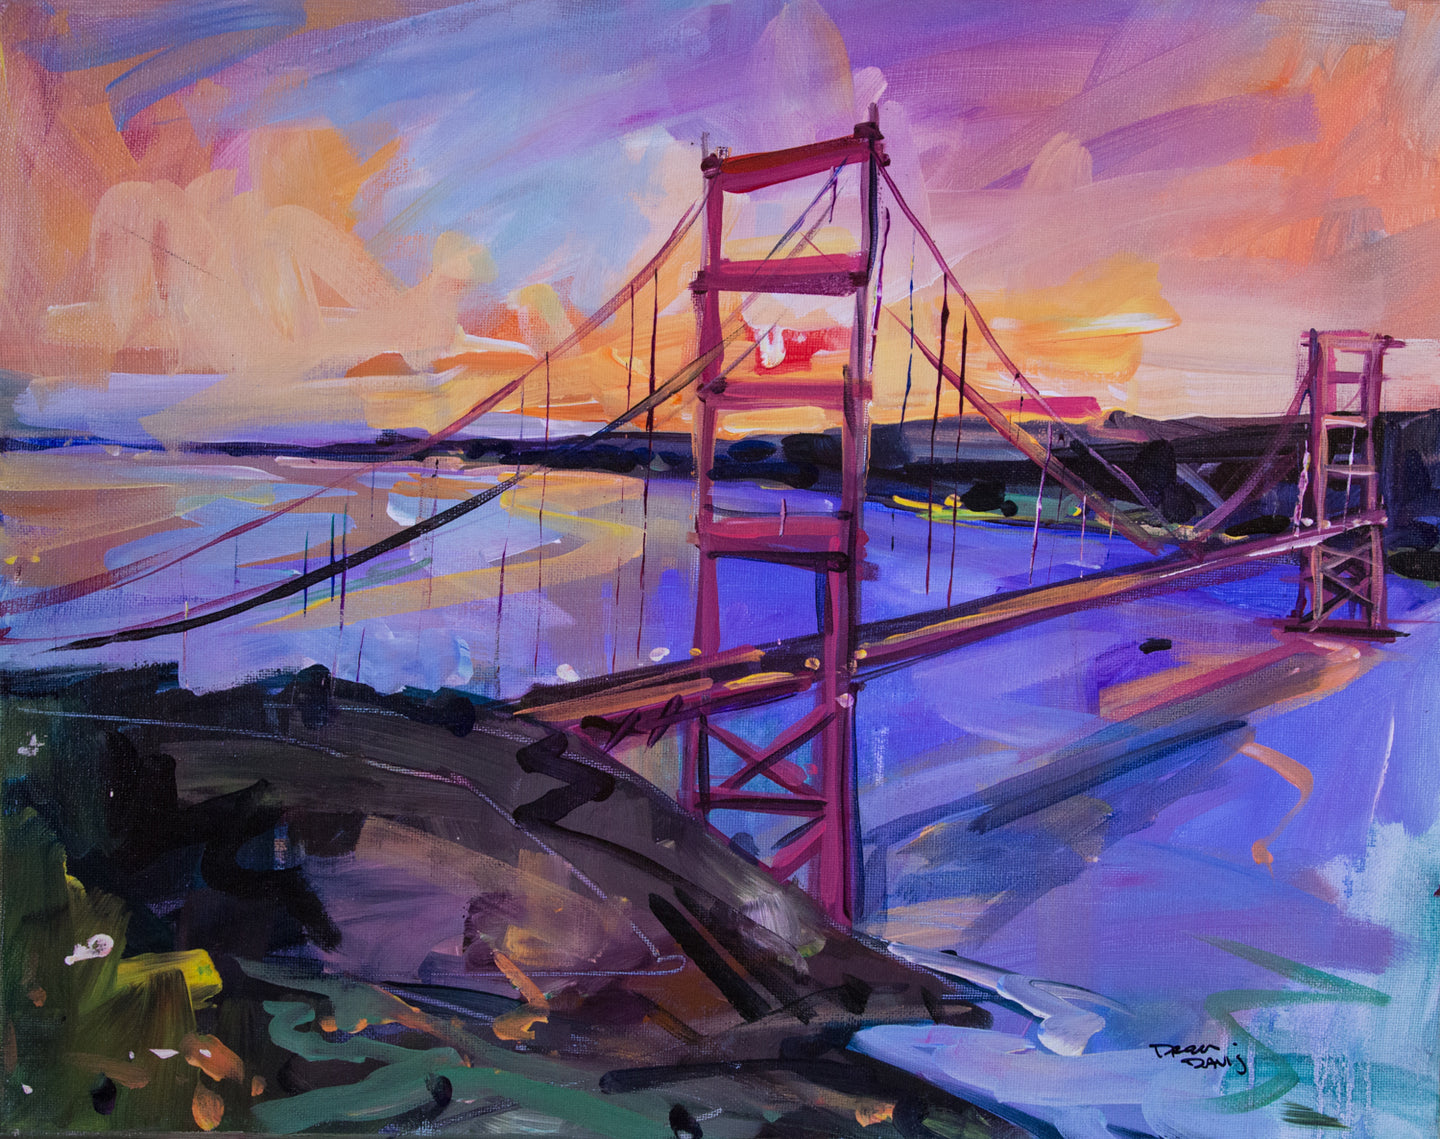 GOLDEN GATE 3 | 16x20 | Original Acrylic Study on Canvas